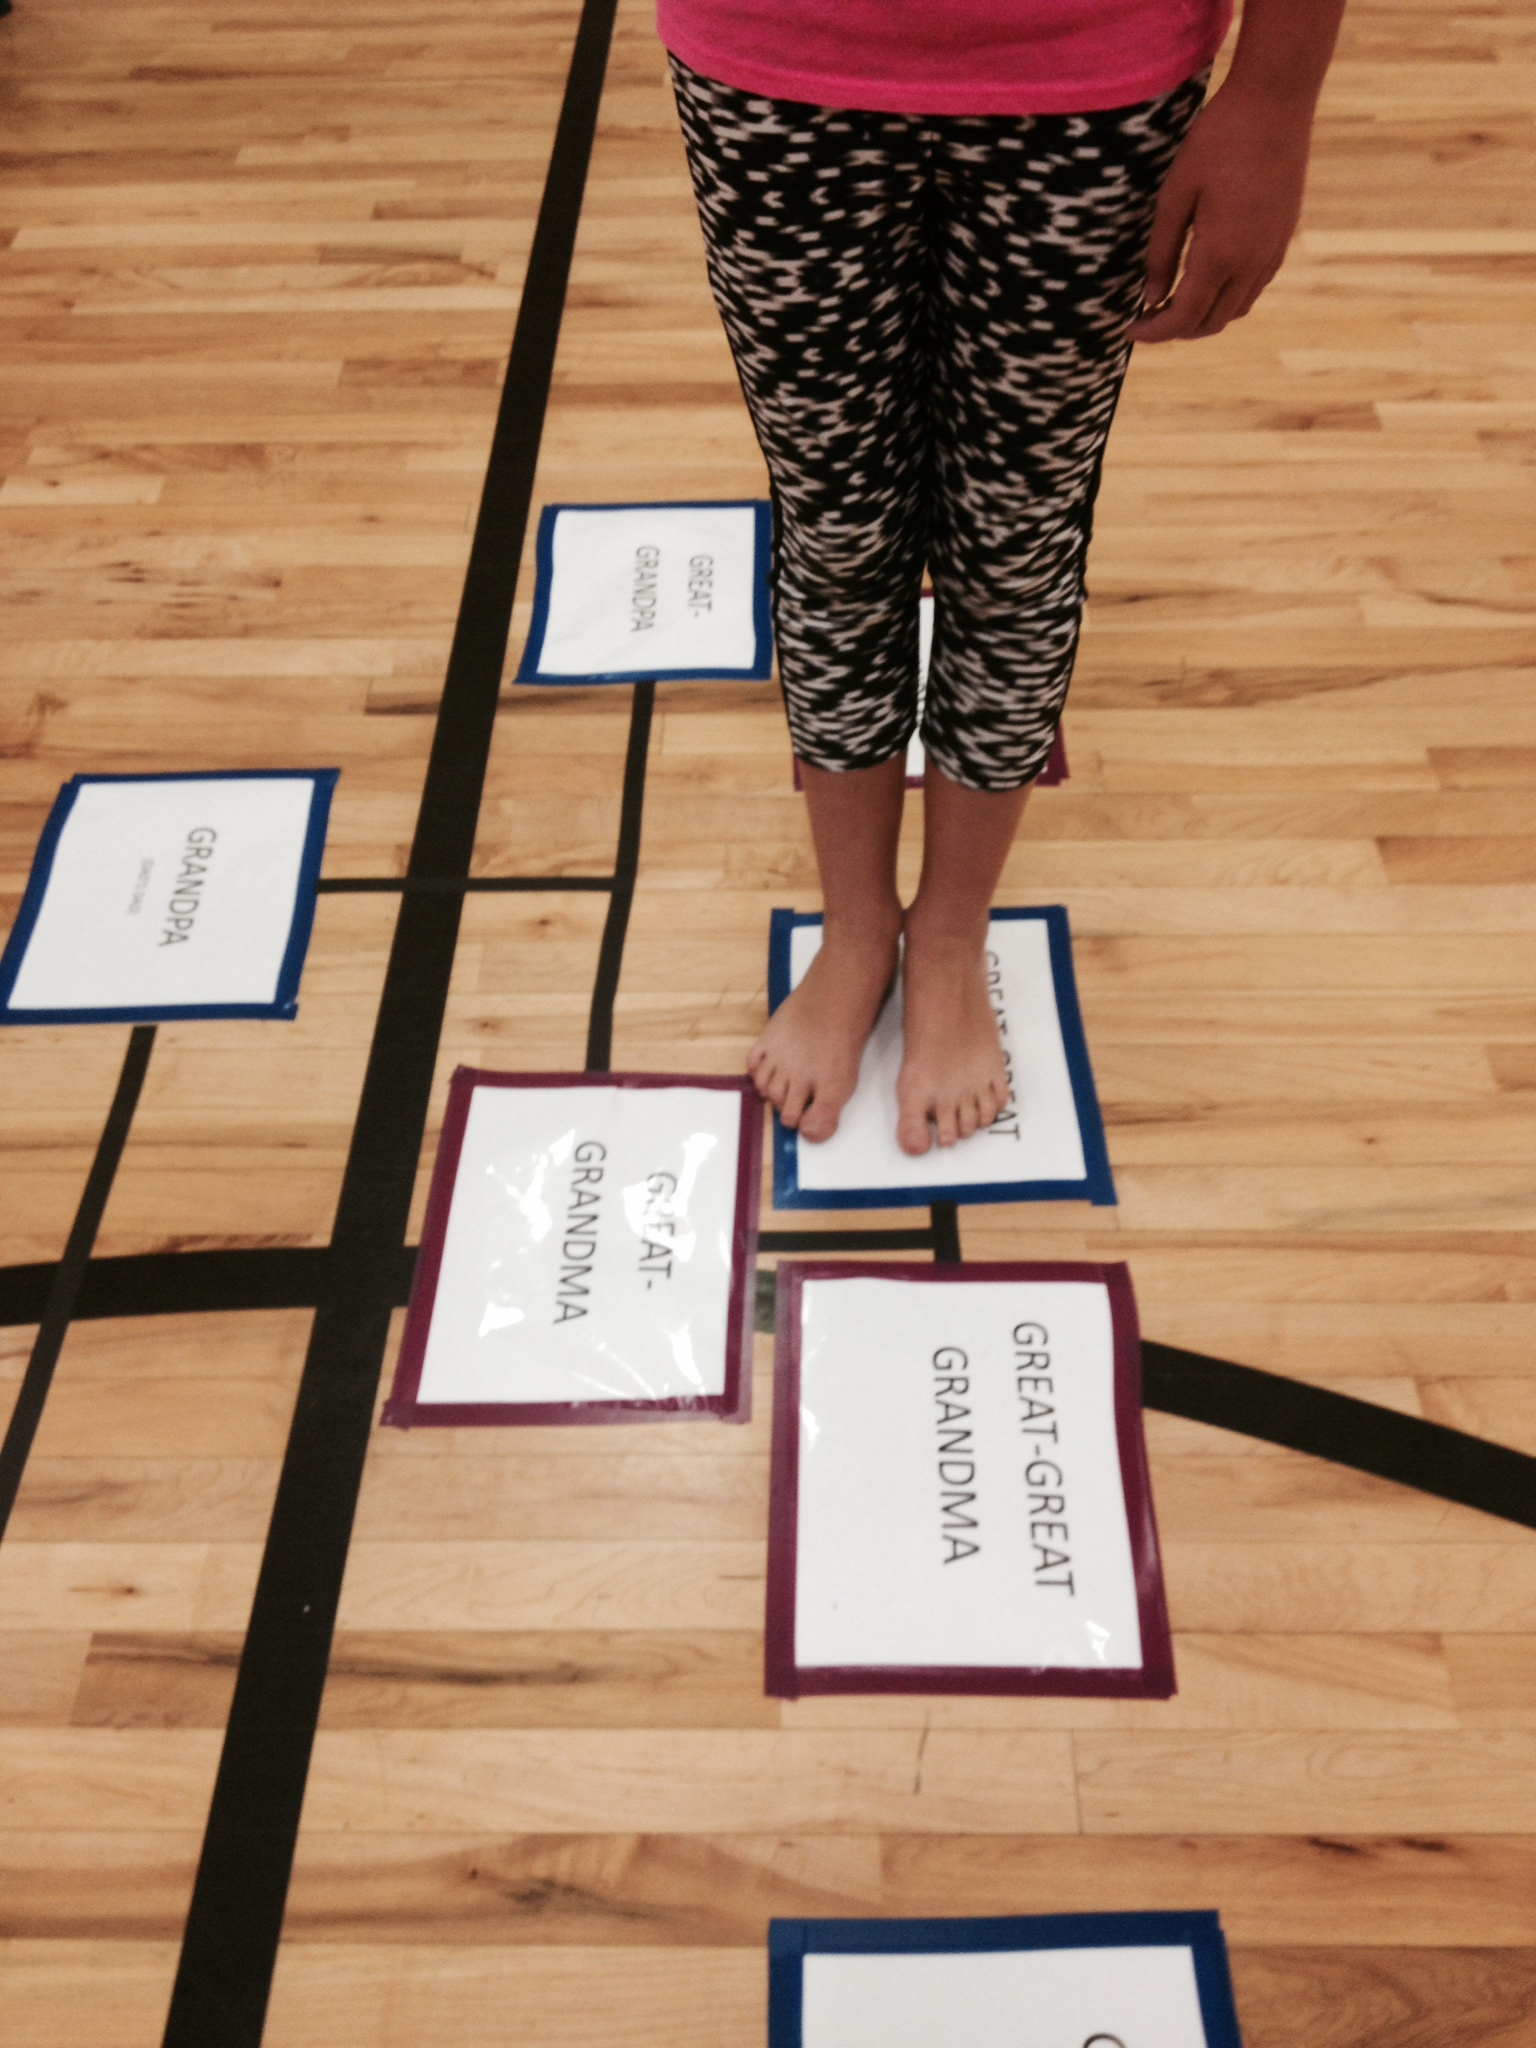 Need Family Reunion Ideas? Family Tree Hopscotch